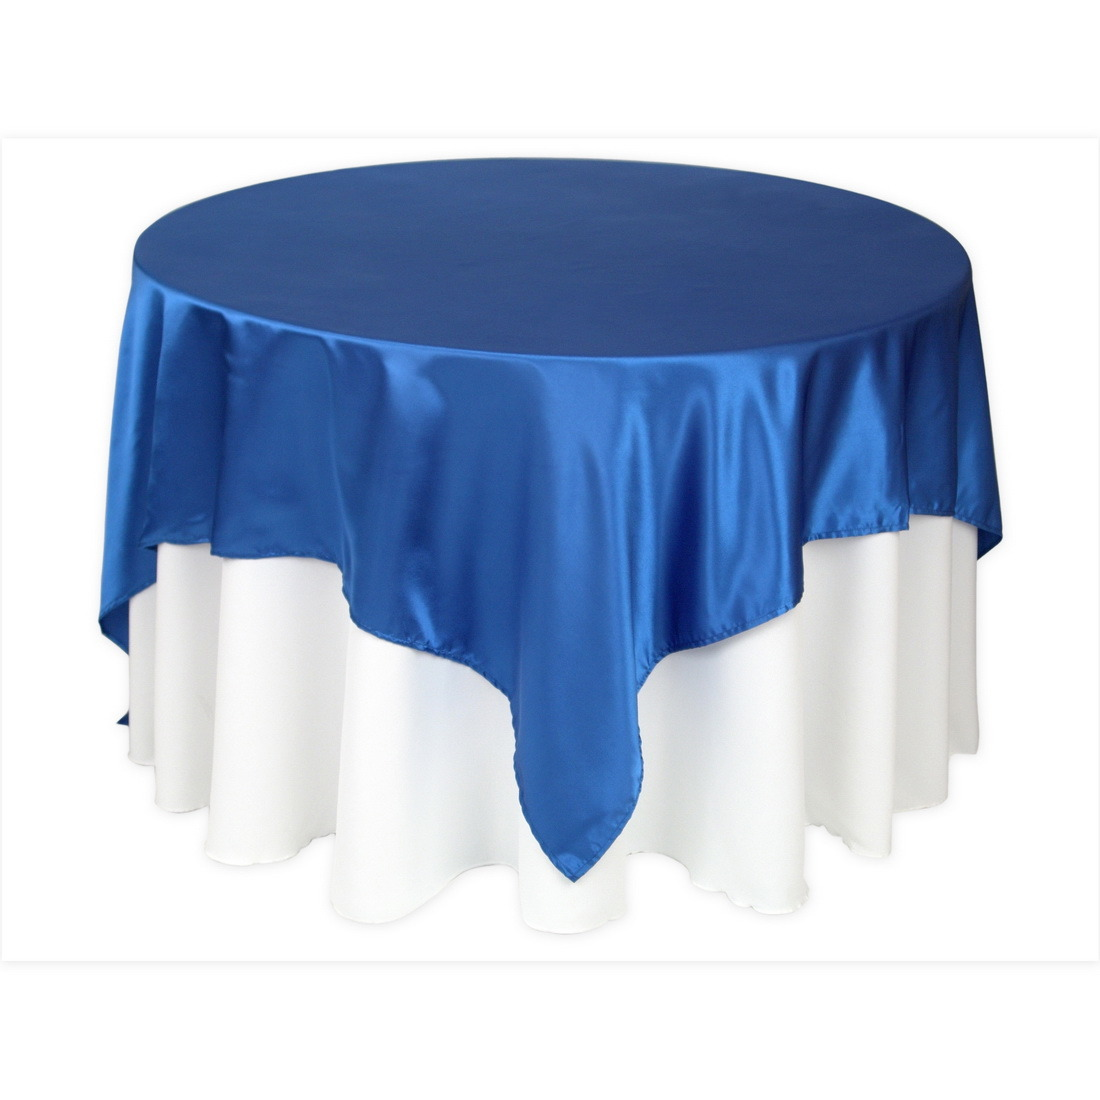 China Banquet Table Cloth Satin Table Cover Table Cloth